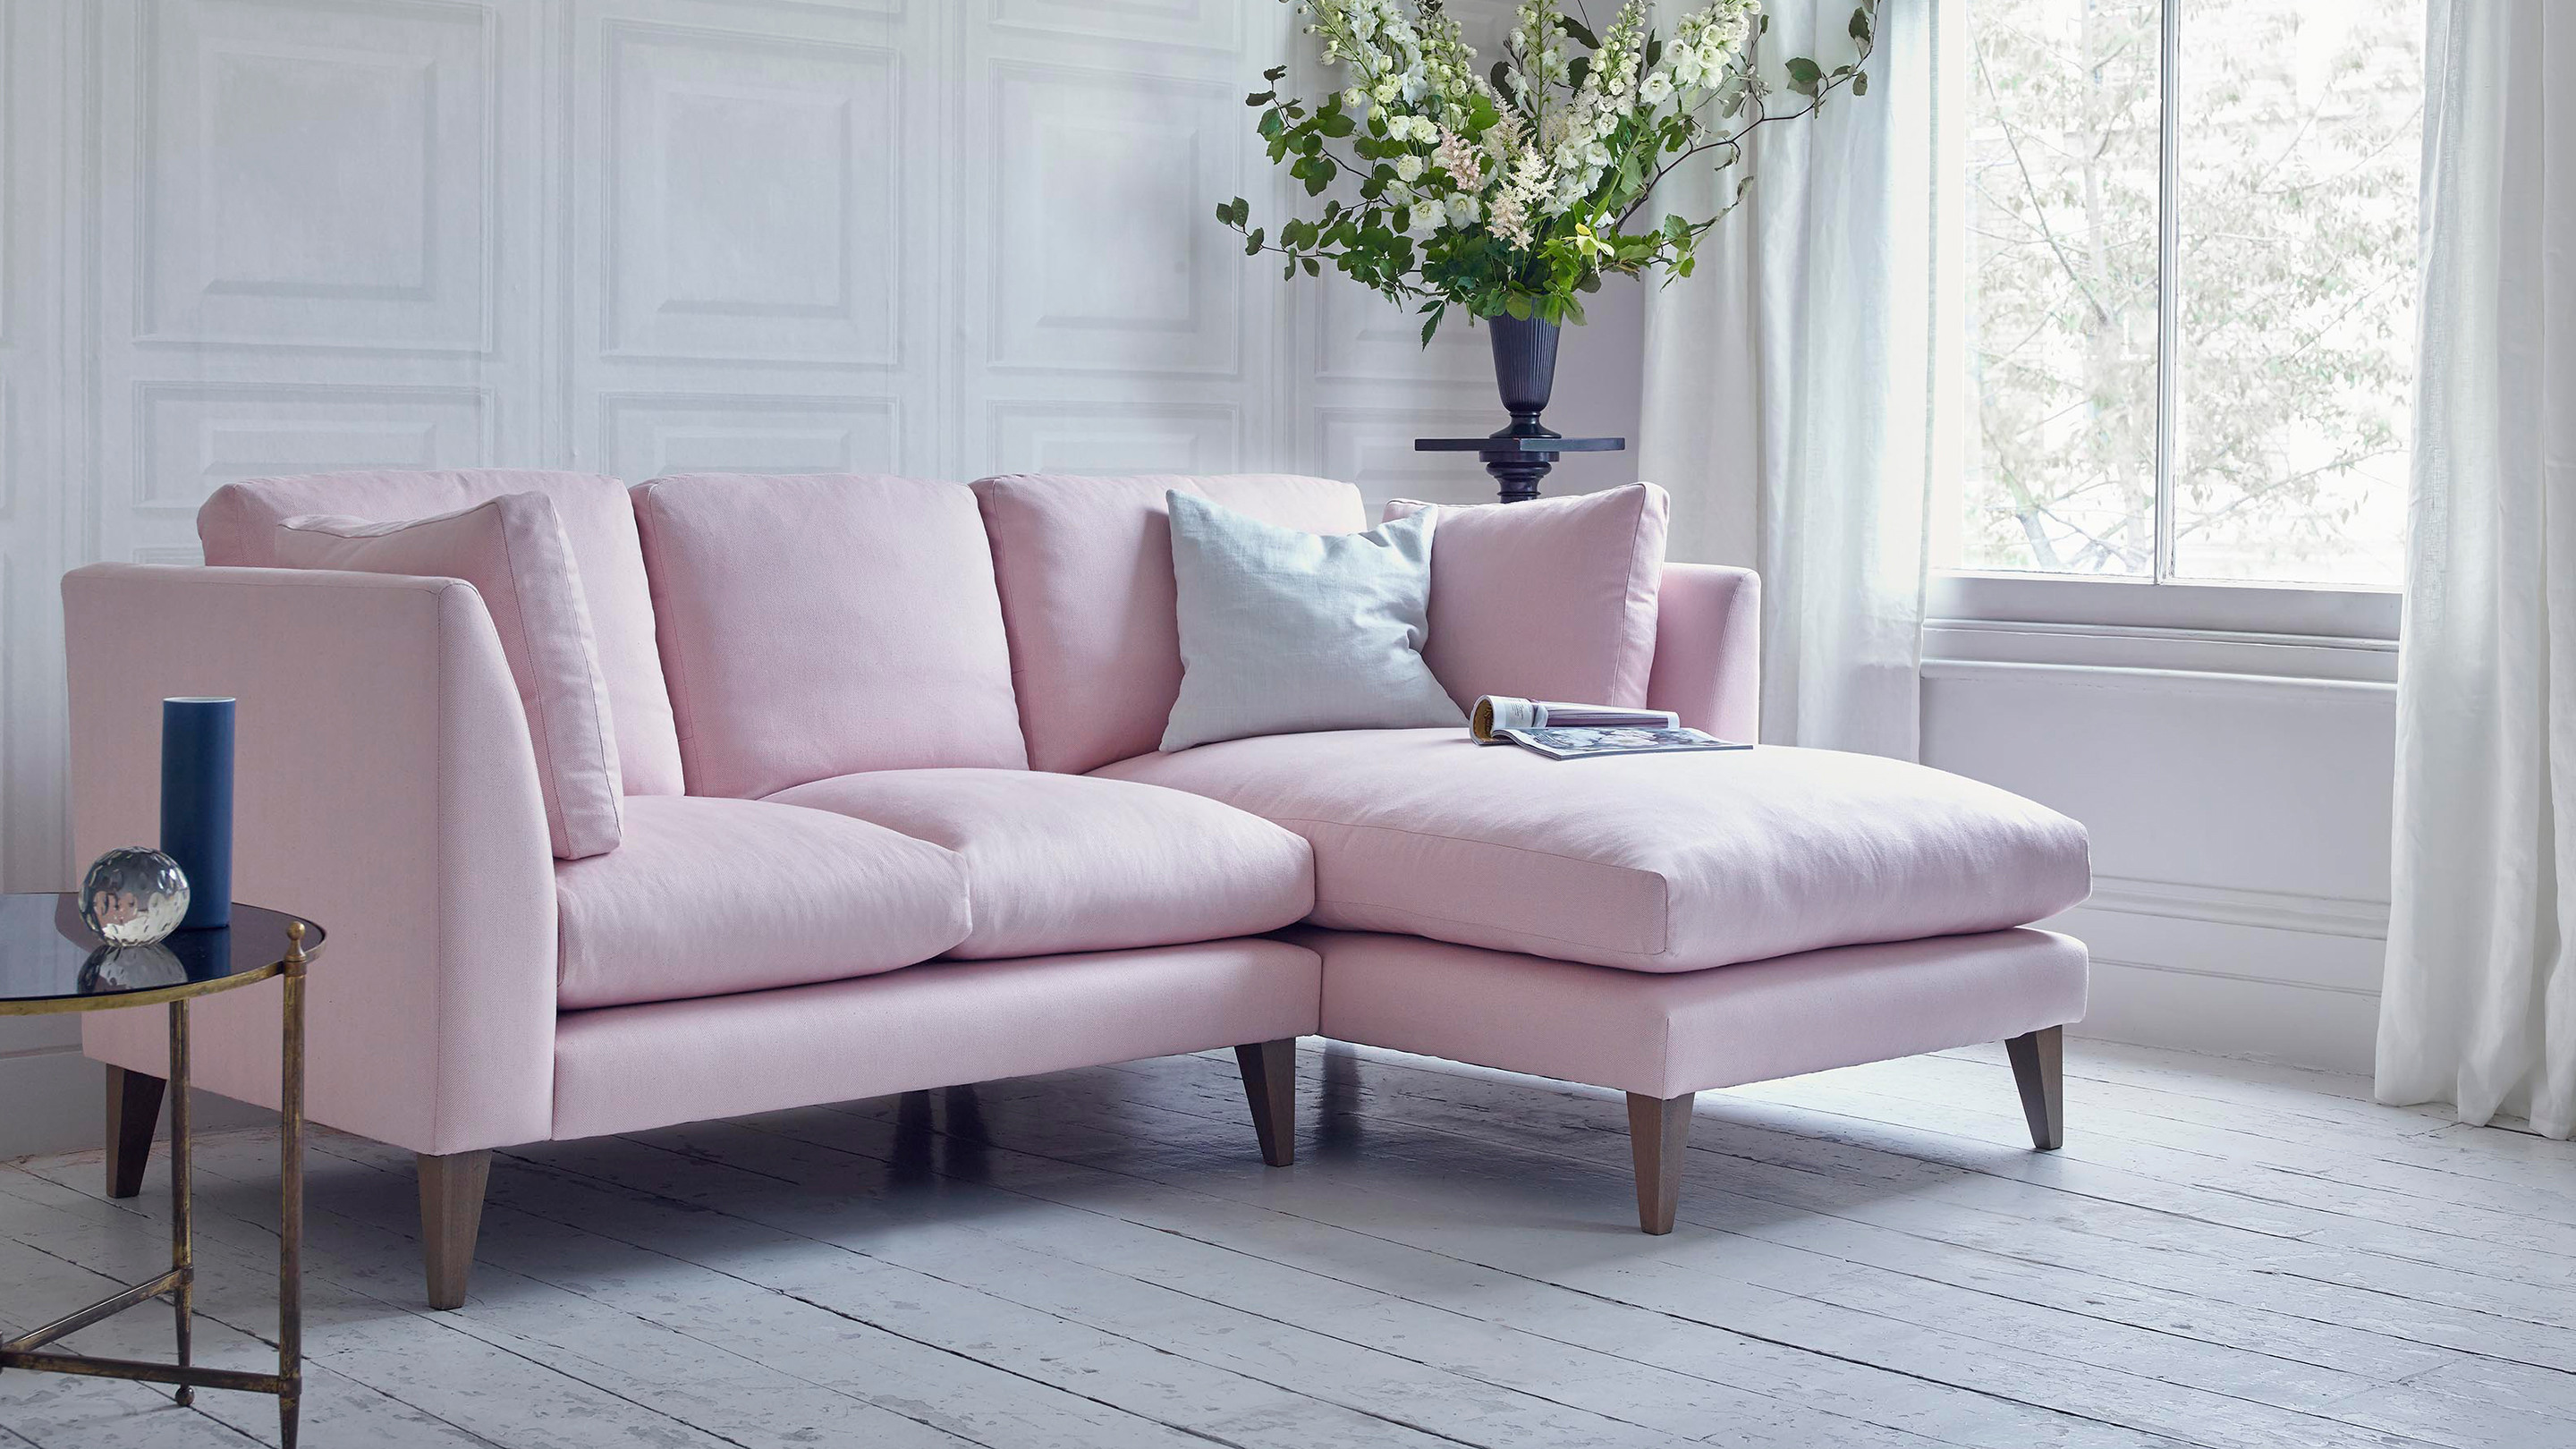 Sofas affordable designer settees 2 seaters chaise for Affordable chaise sofas